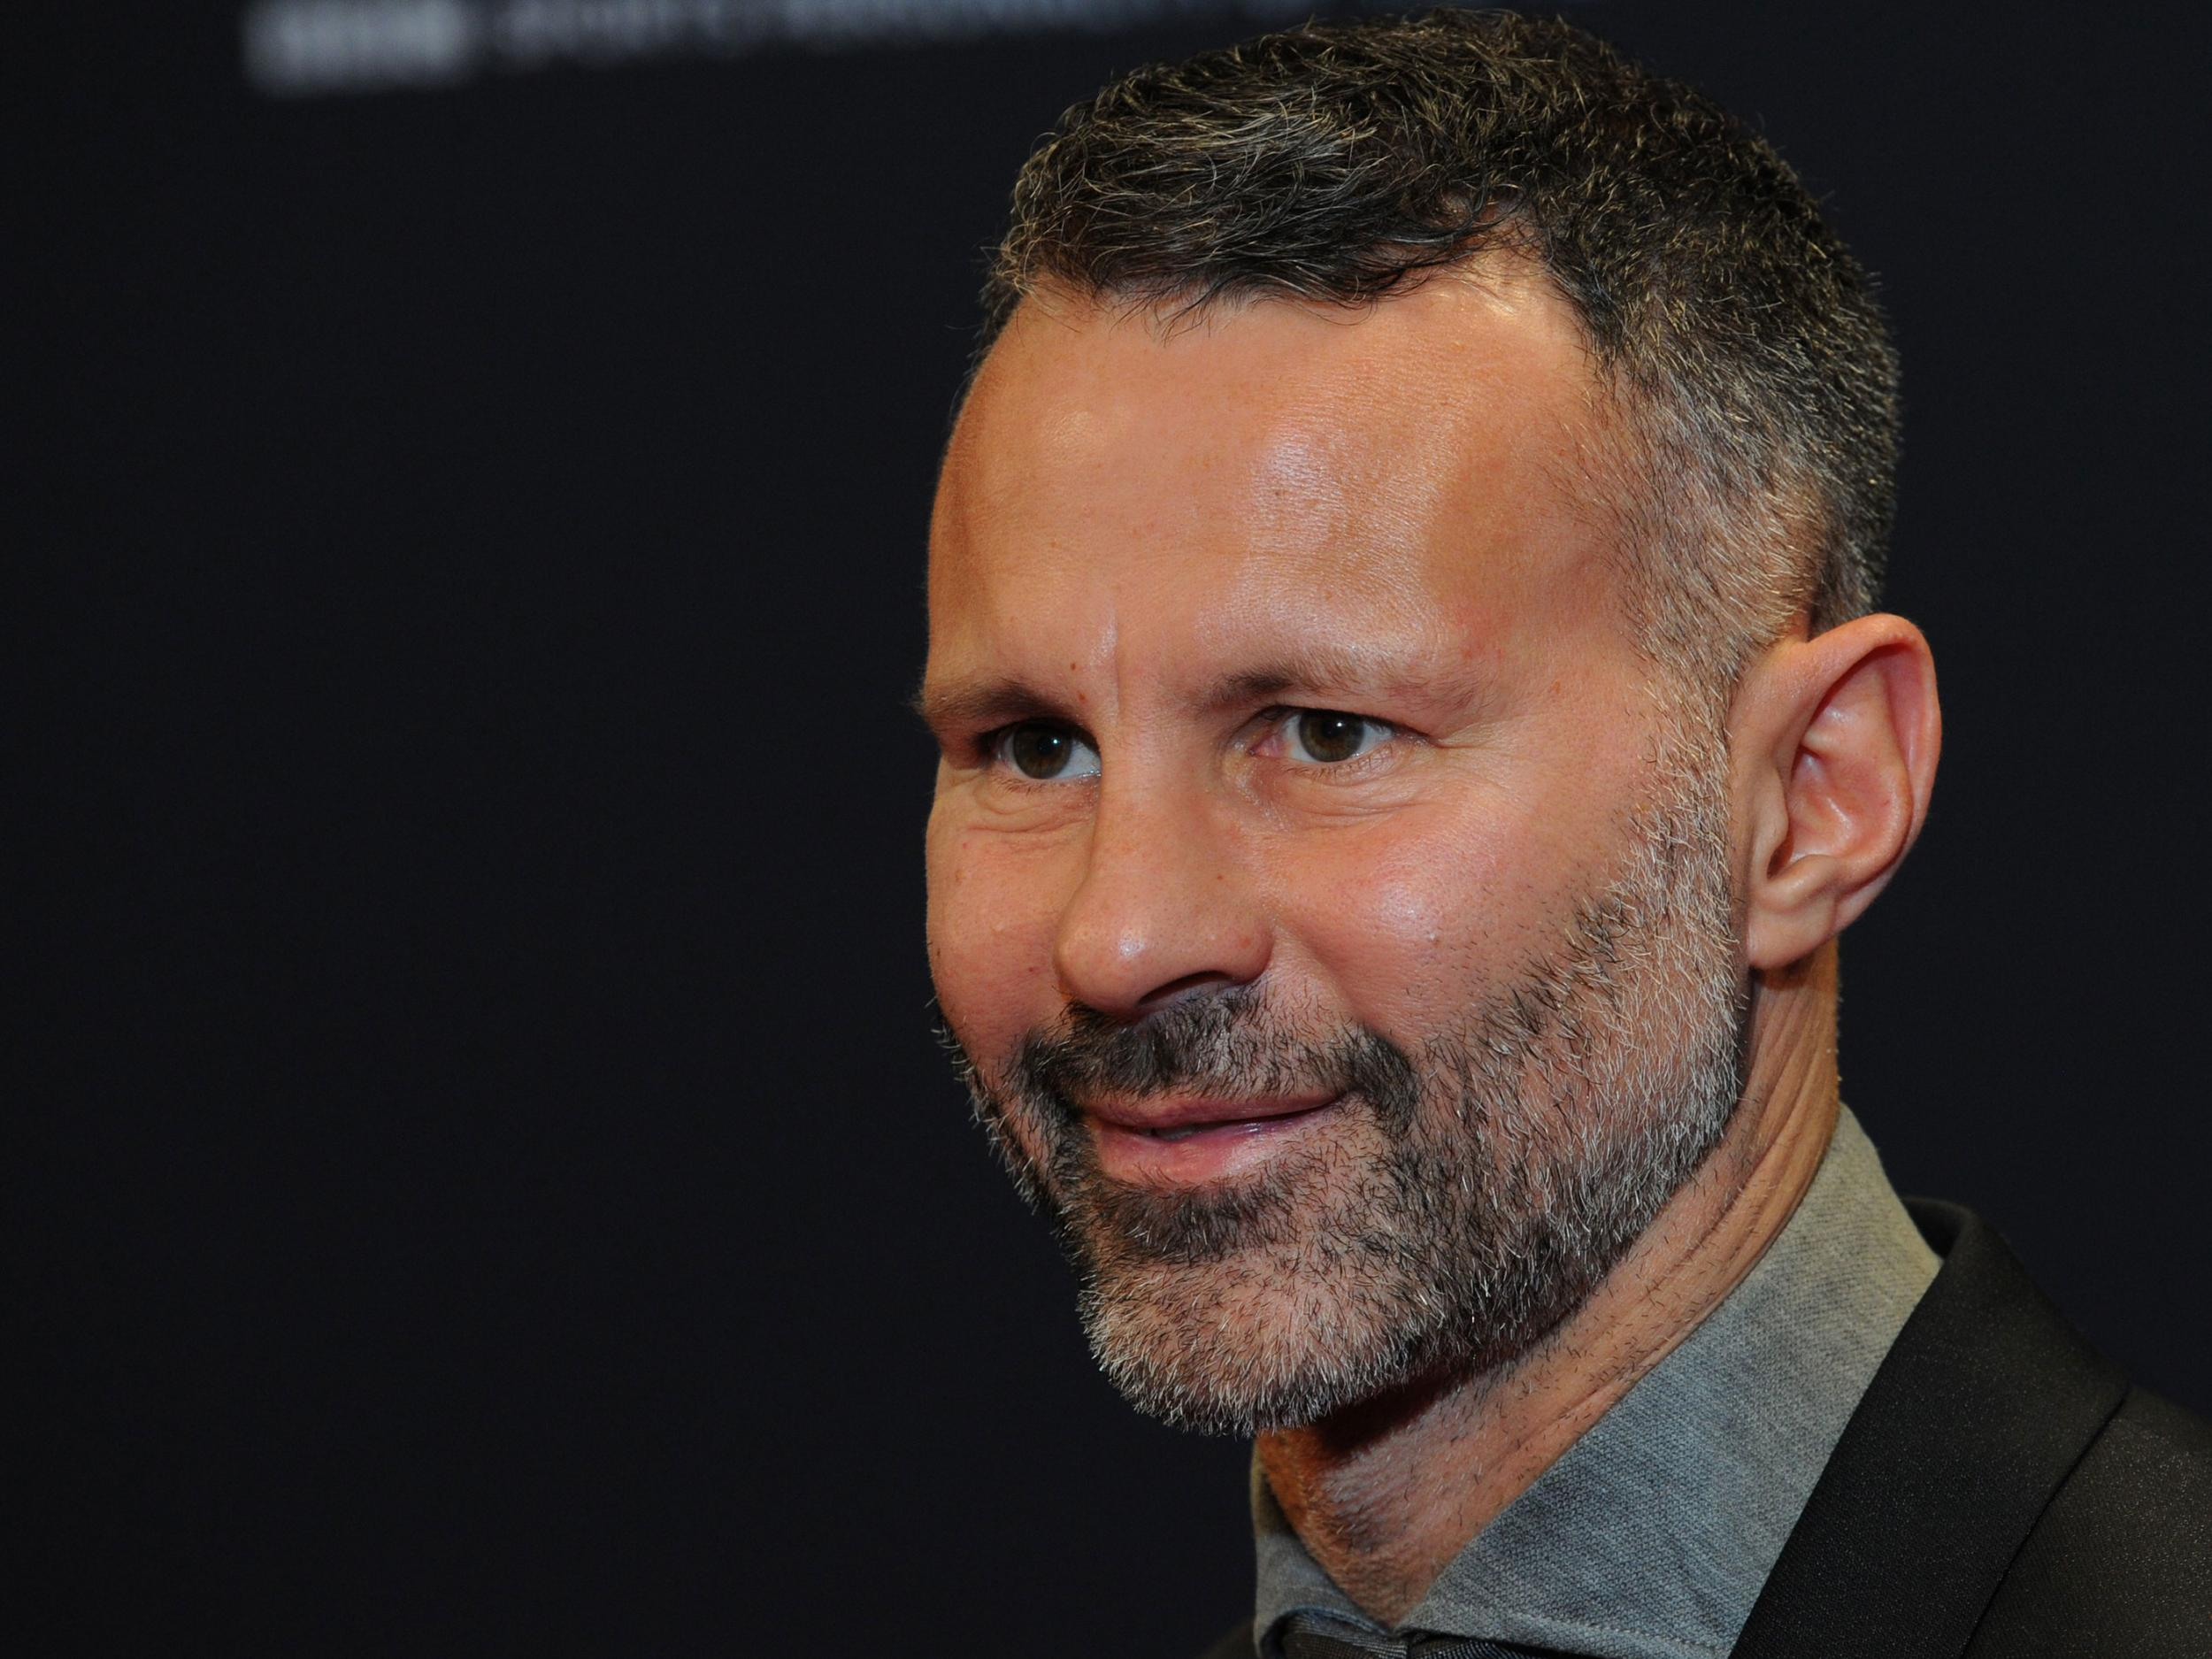 Ryan Giggs set to become new Wales manager as Manchester United great replaces Chris Coleman